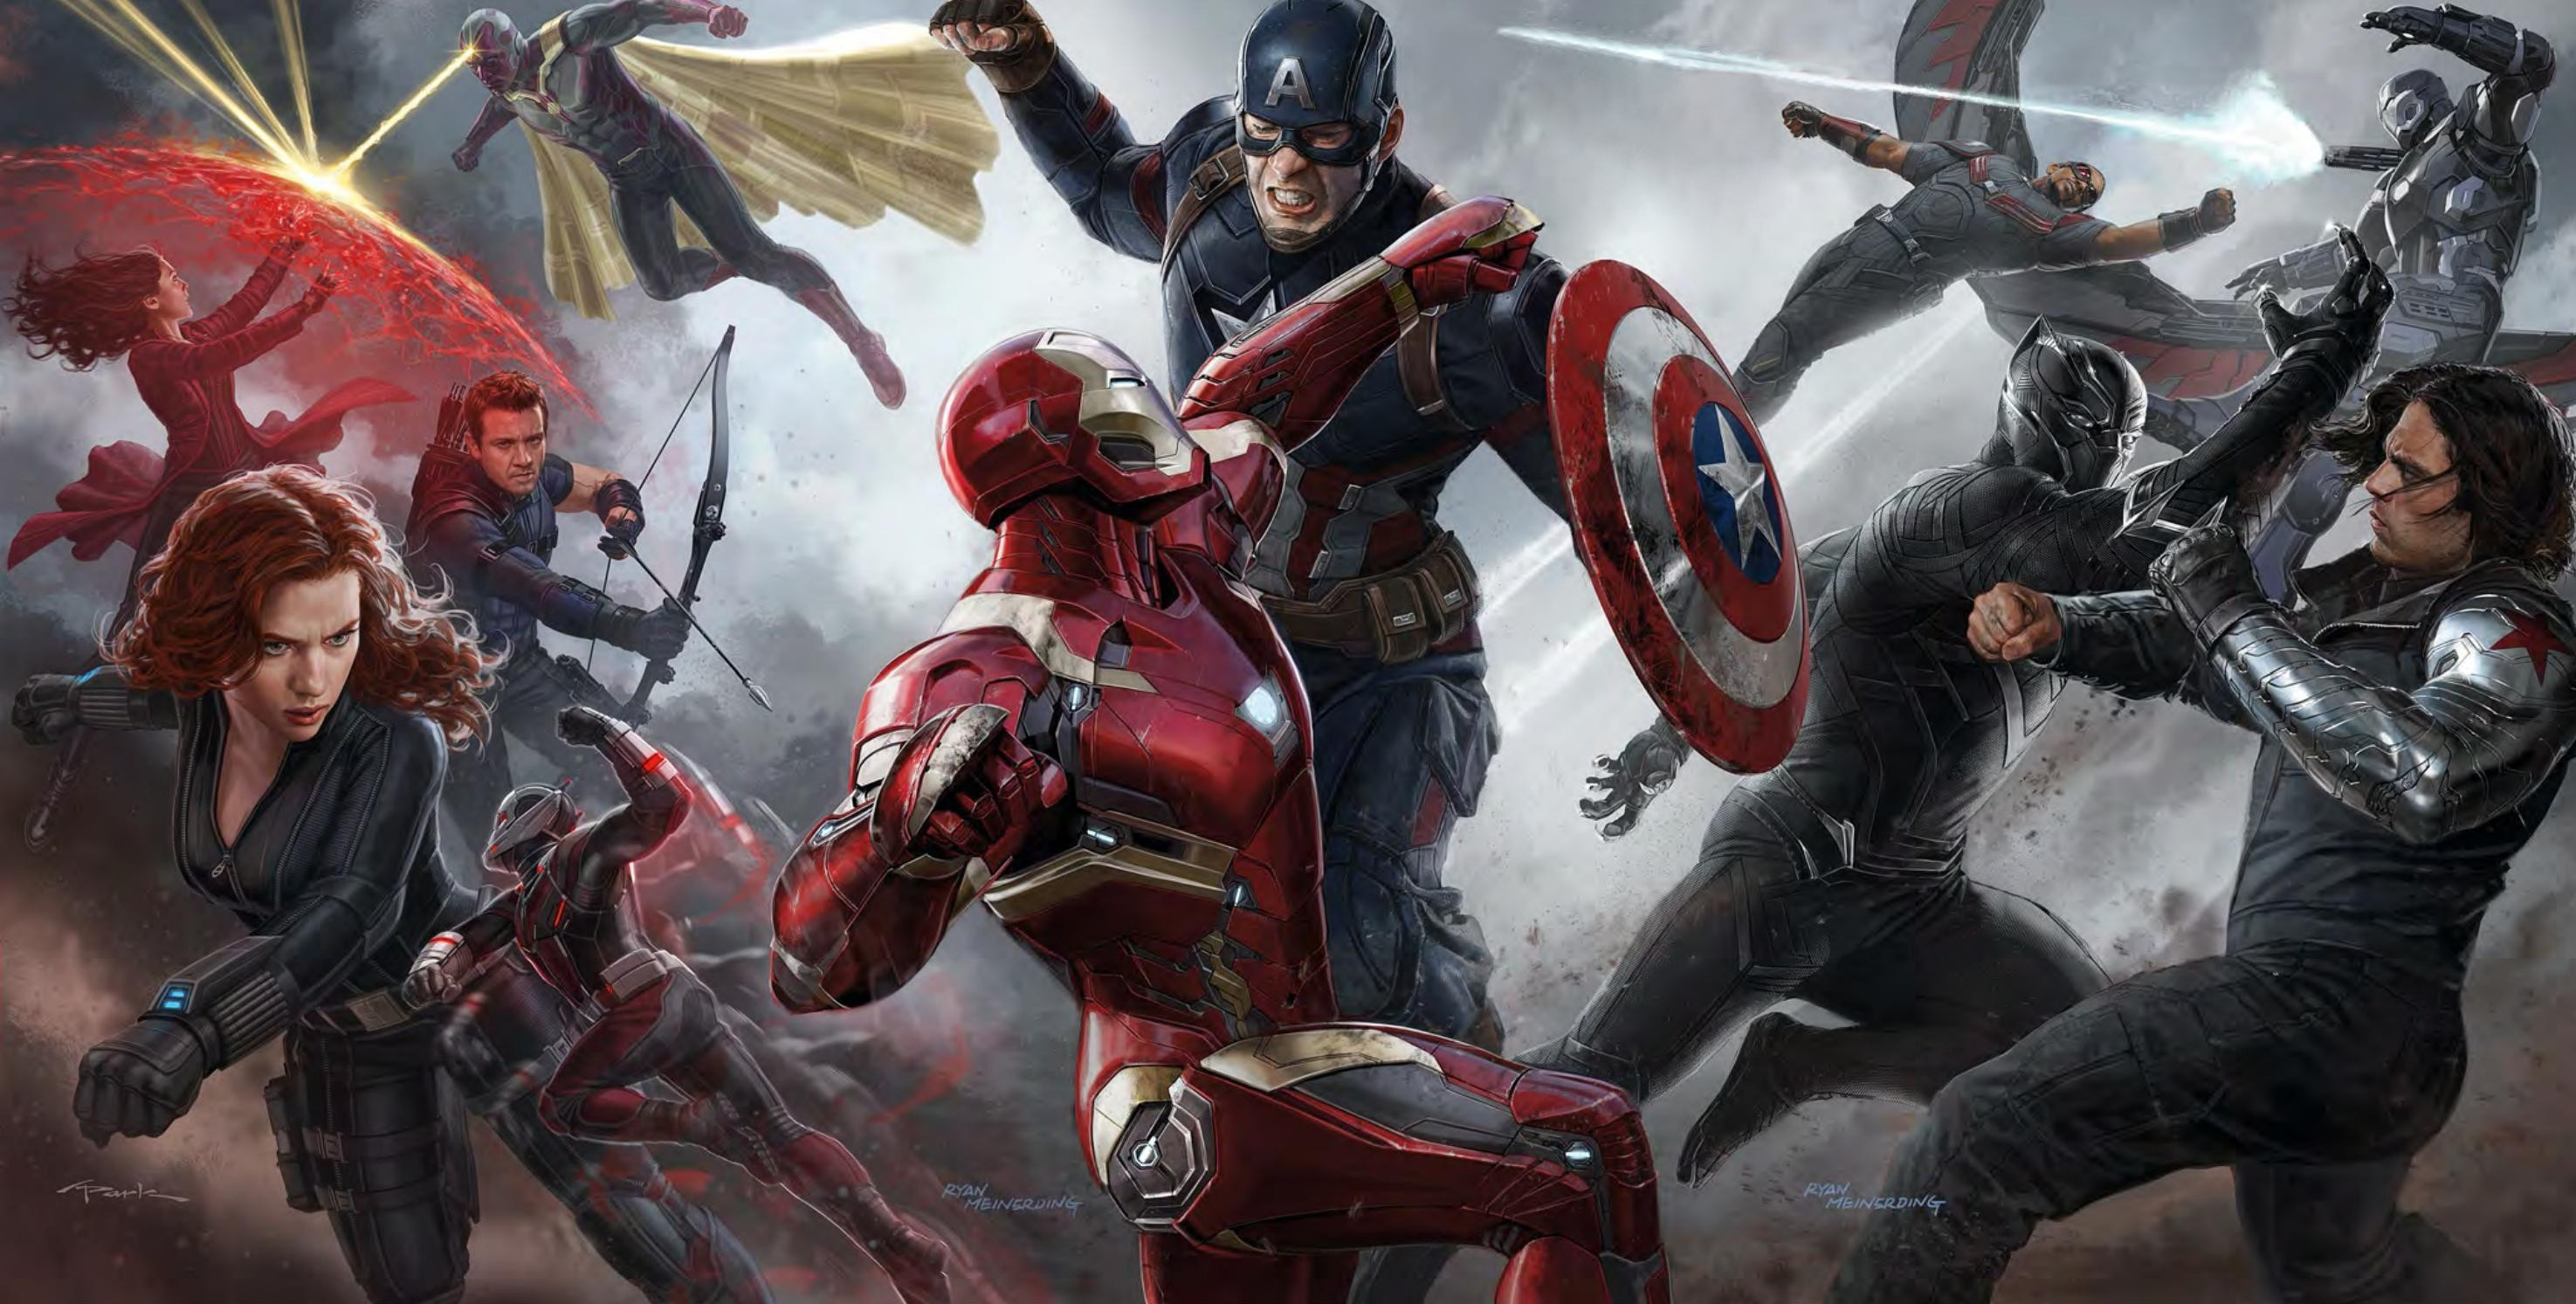 30 captain america: civil war fonds d'écran hd | arrière-plans